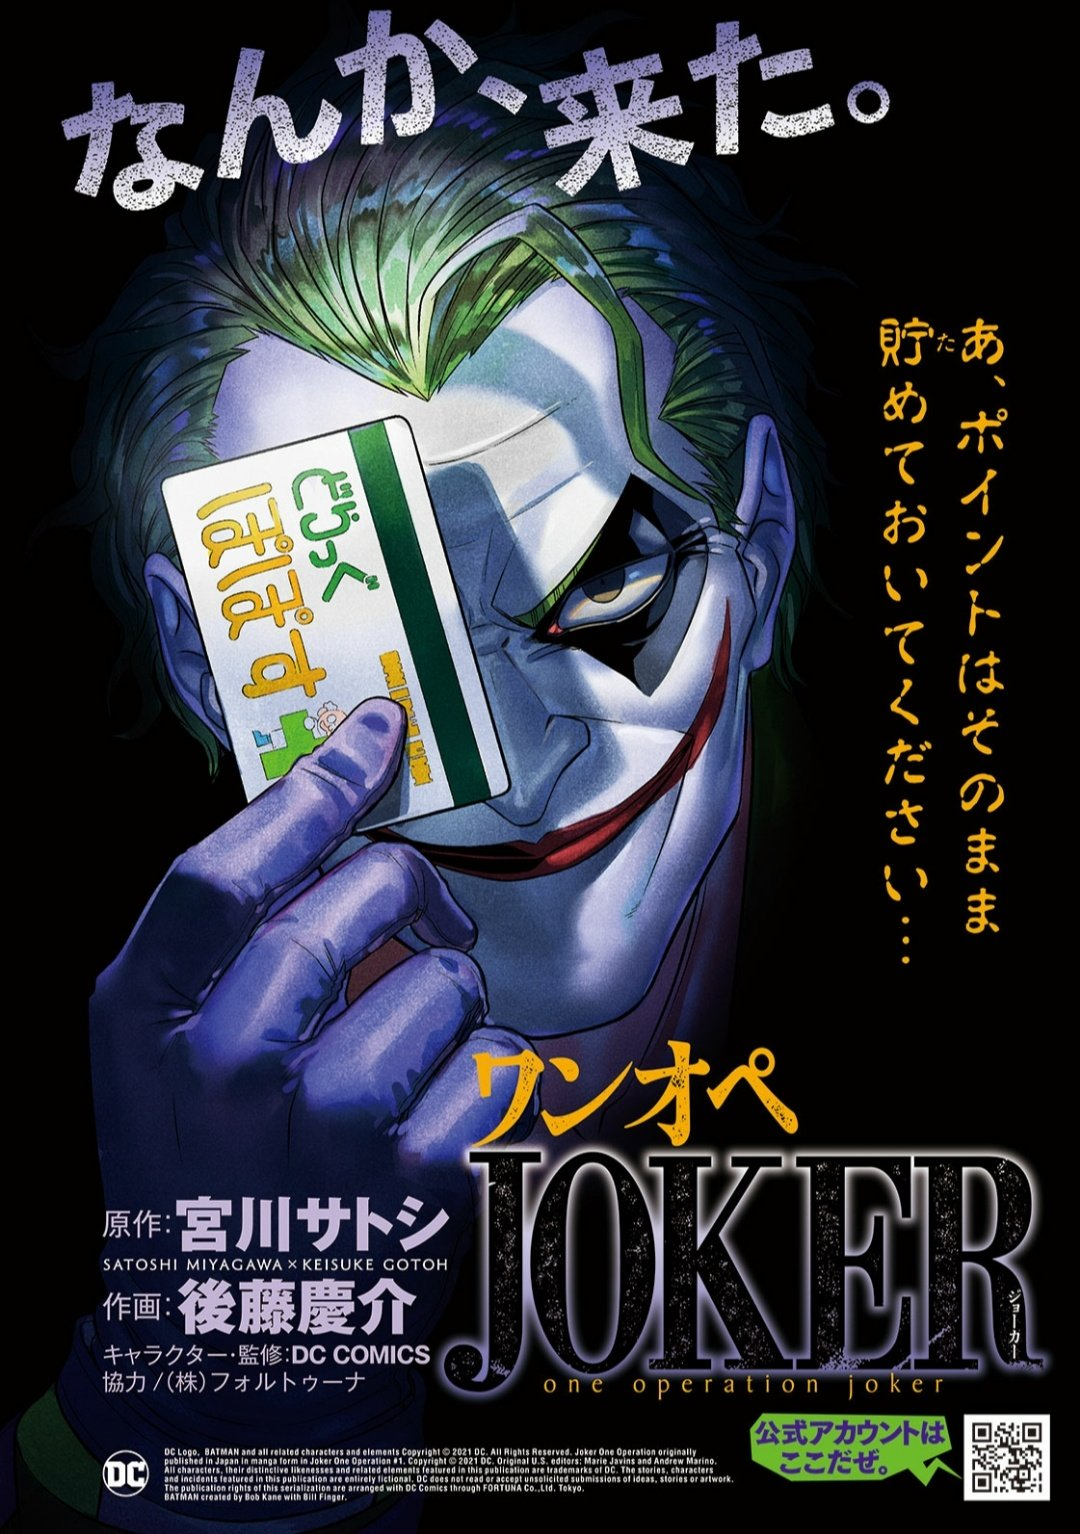 joker raise baby batman manga